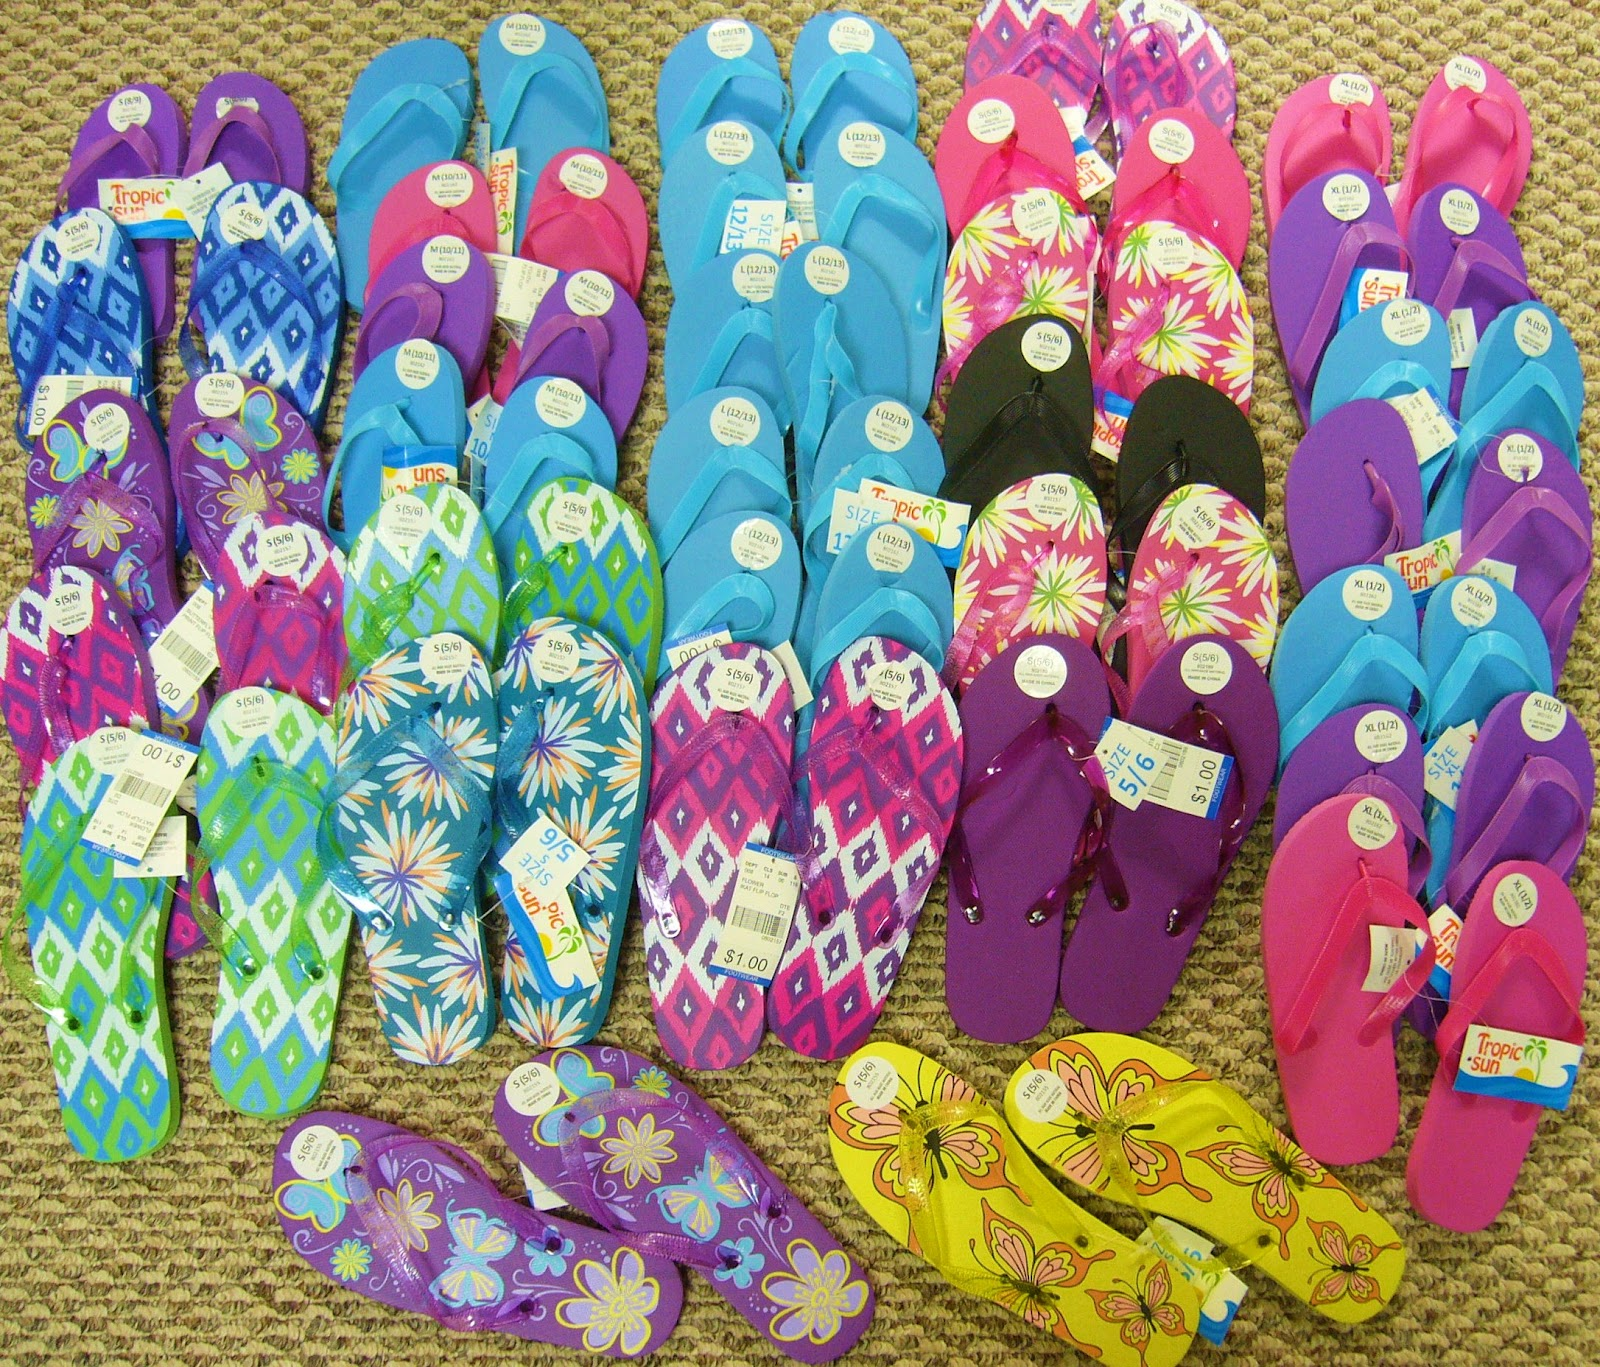 9441854277df89 Flip flops purchased at Family Dollar for Operation Christmas Child  shoeboxes.